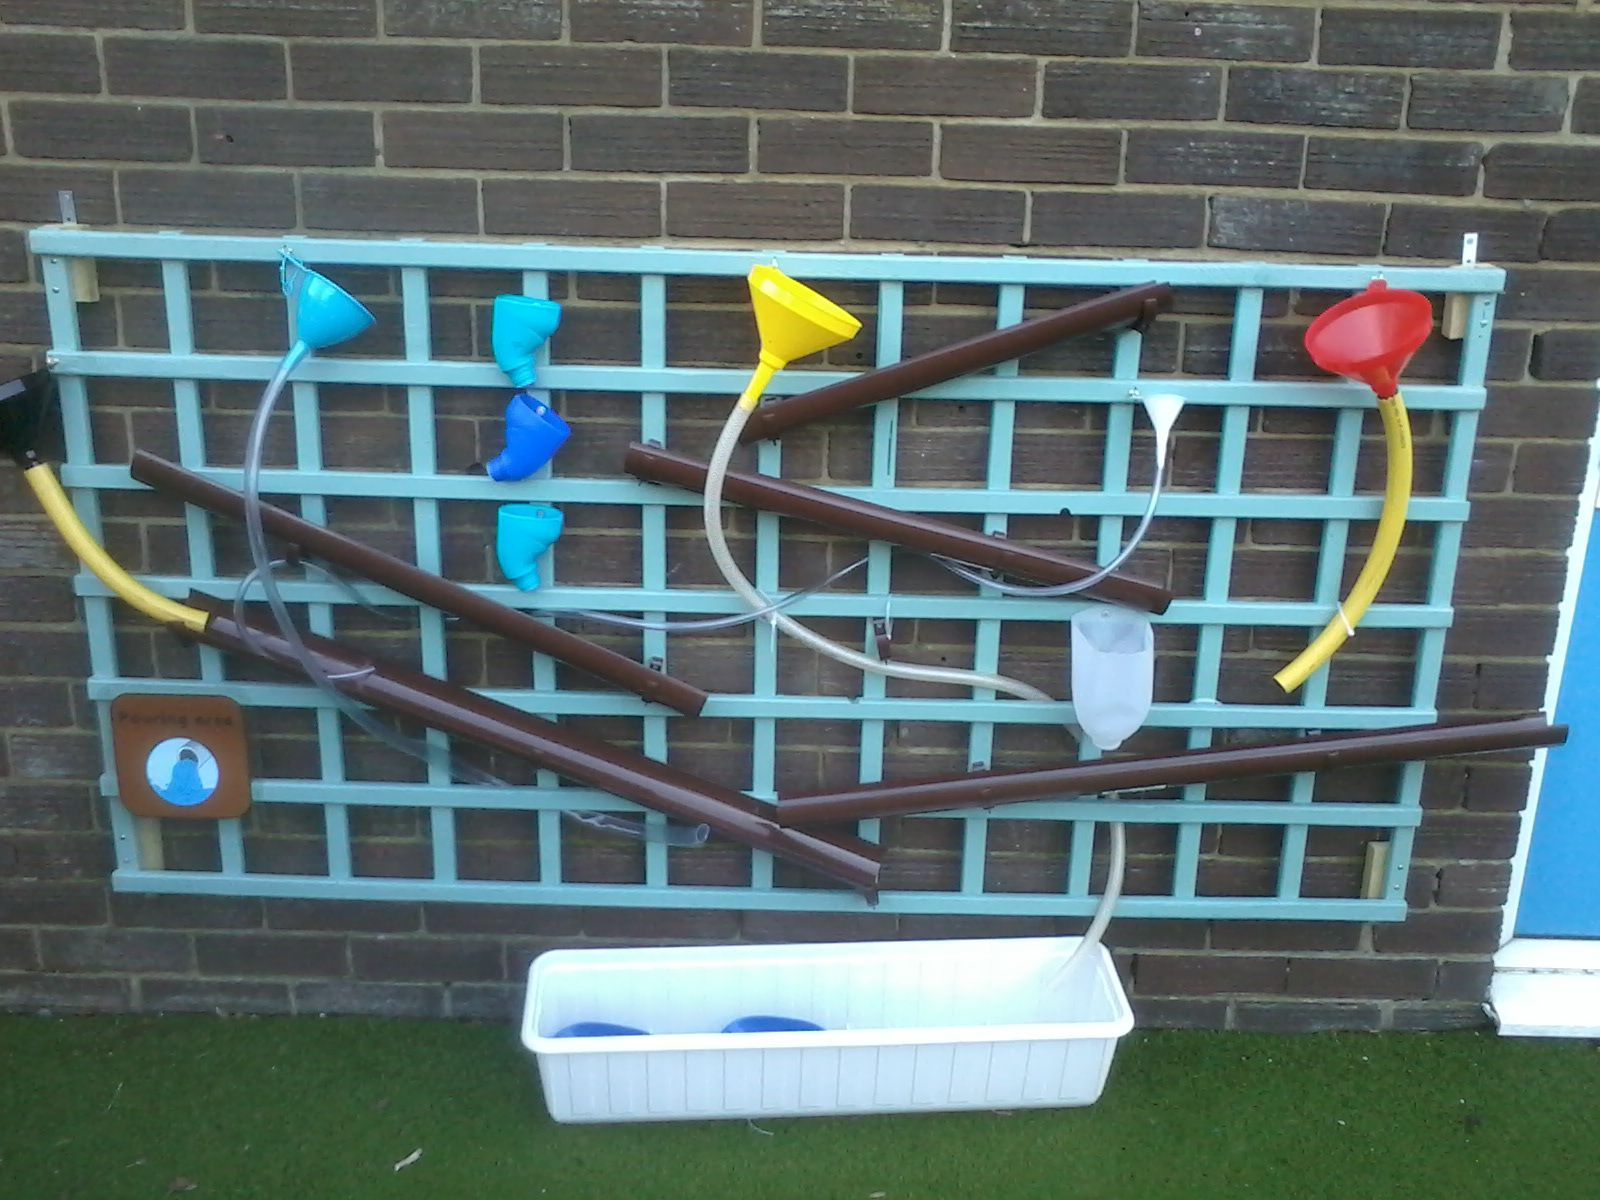 eyfs outdoor provision - pouring wall - water wall - gutterering